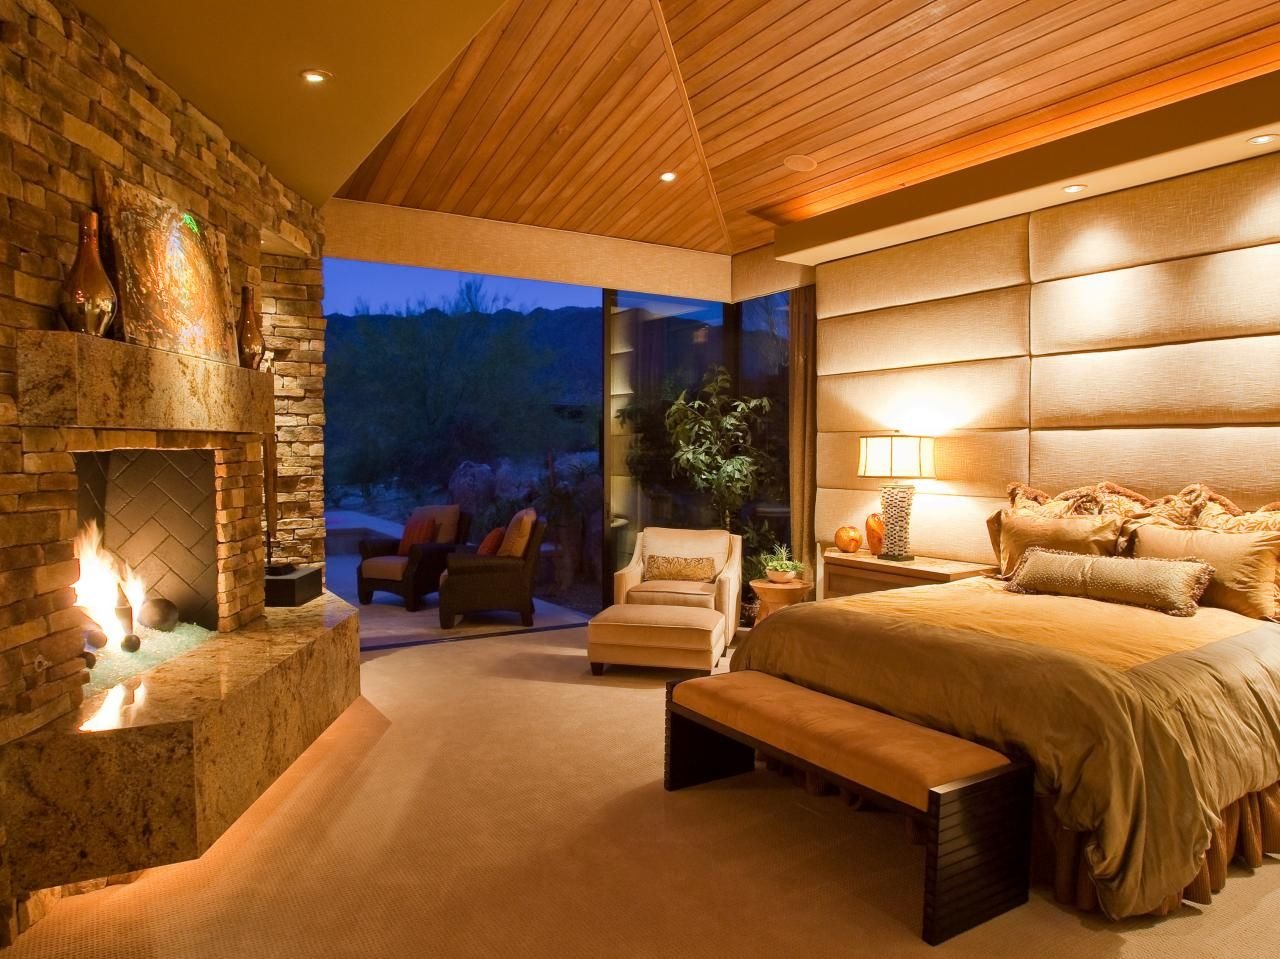 Master bedroom fireplace   Creative Headboard Ideas  Wooden ceilings Brick fireplace and